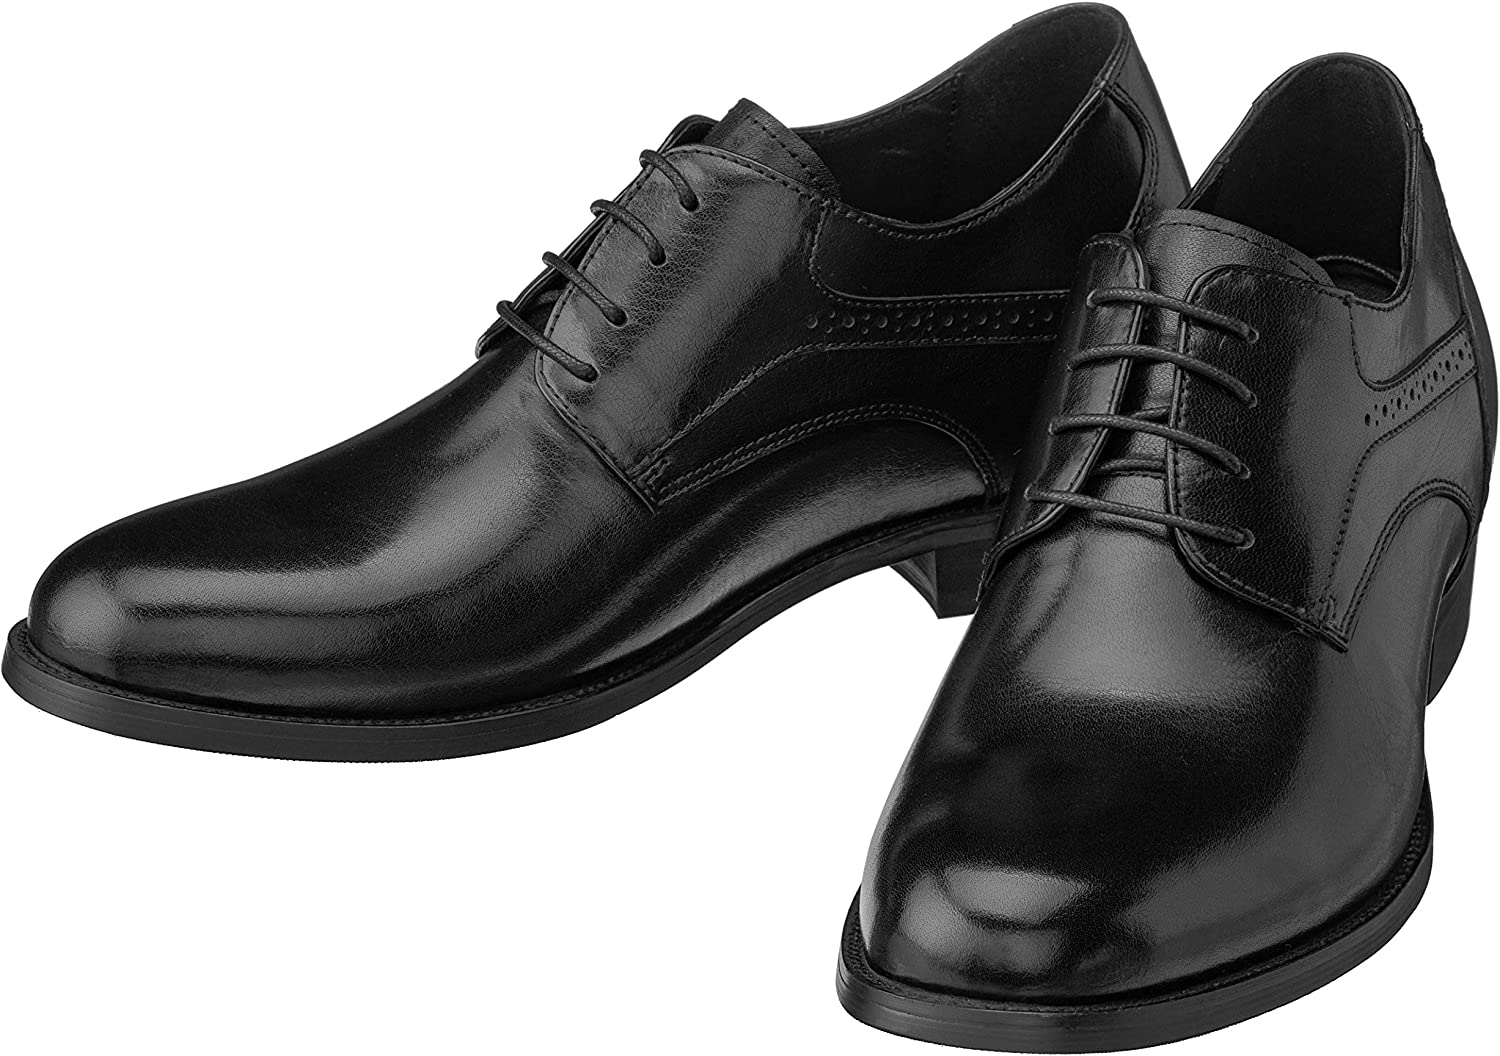 CALTO Men's Invisible Height Increasing Elevator Shoes - Premium Leather Lace-up Formal Derby Oxfords - 2.8 Inches Taller